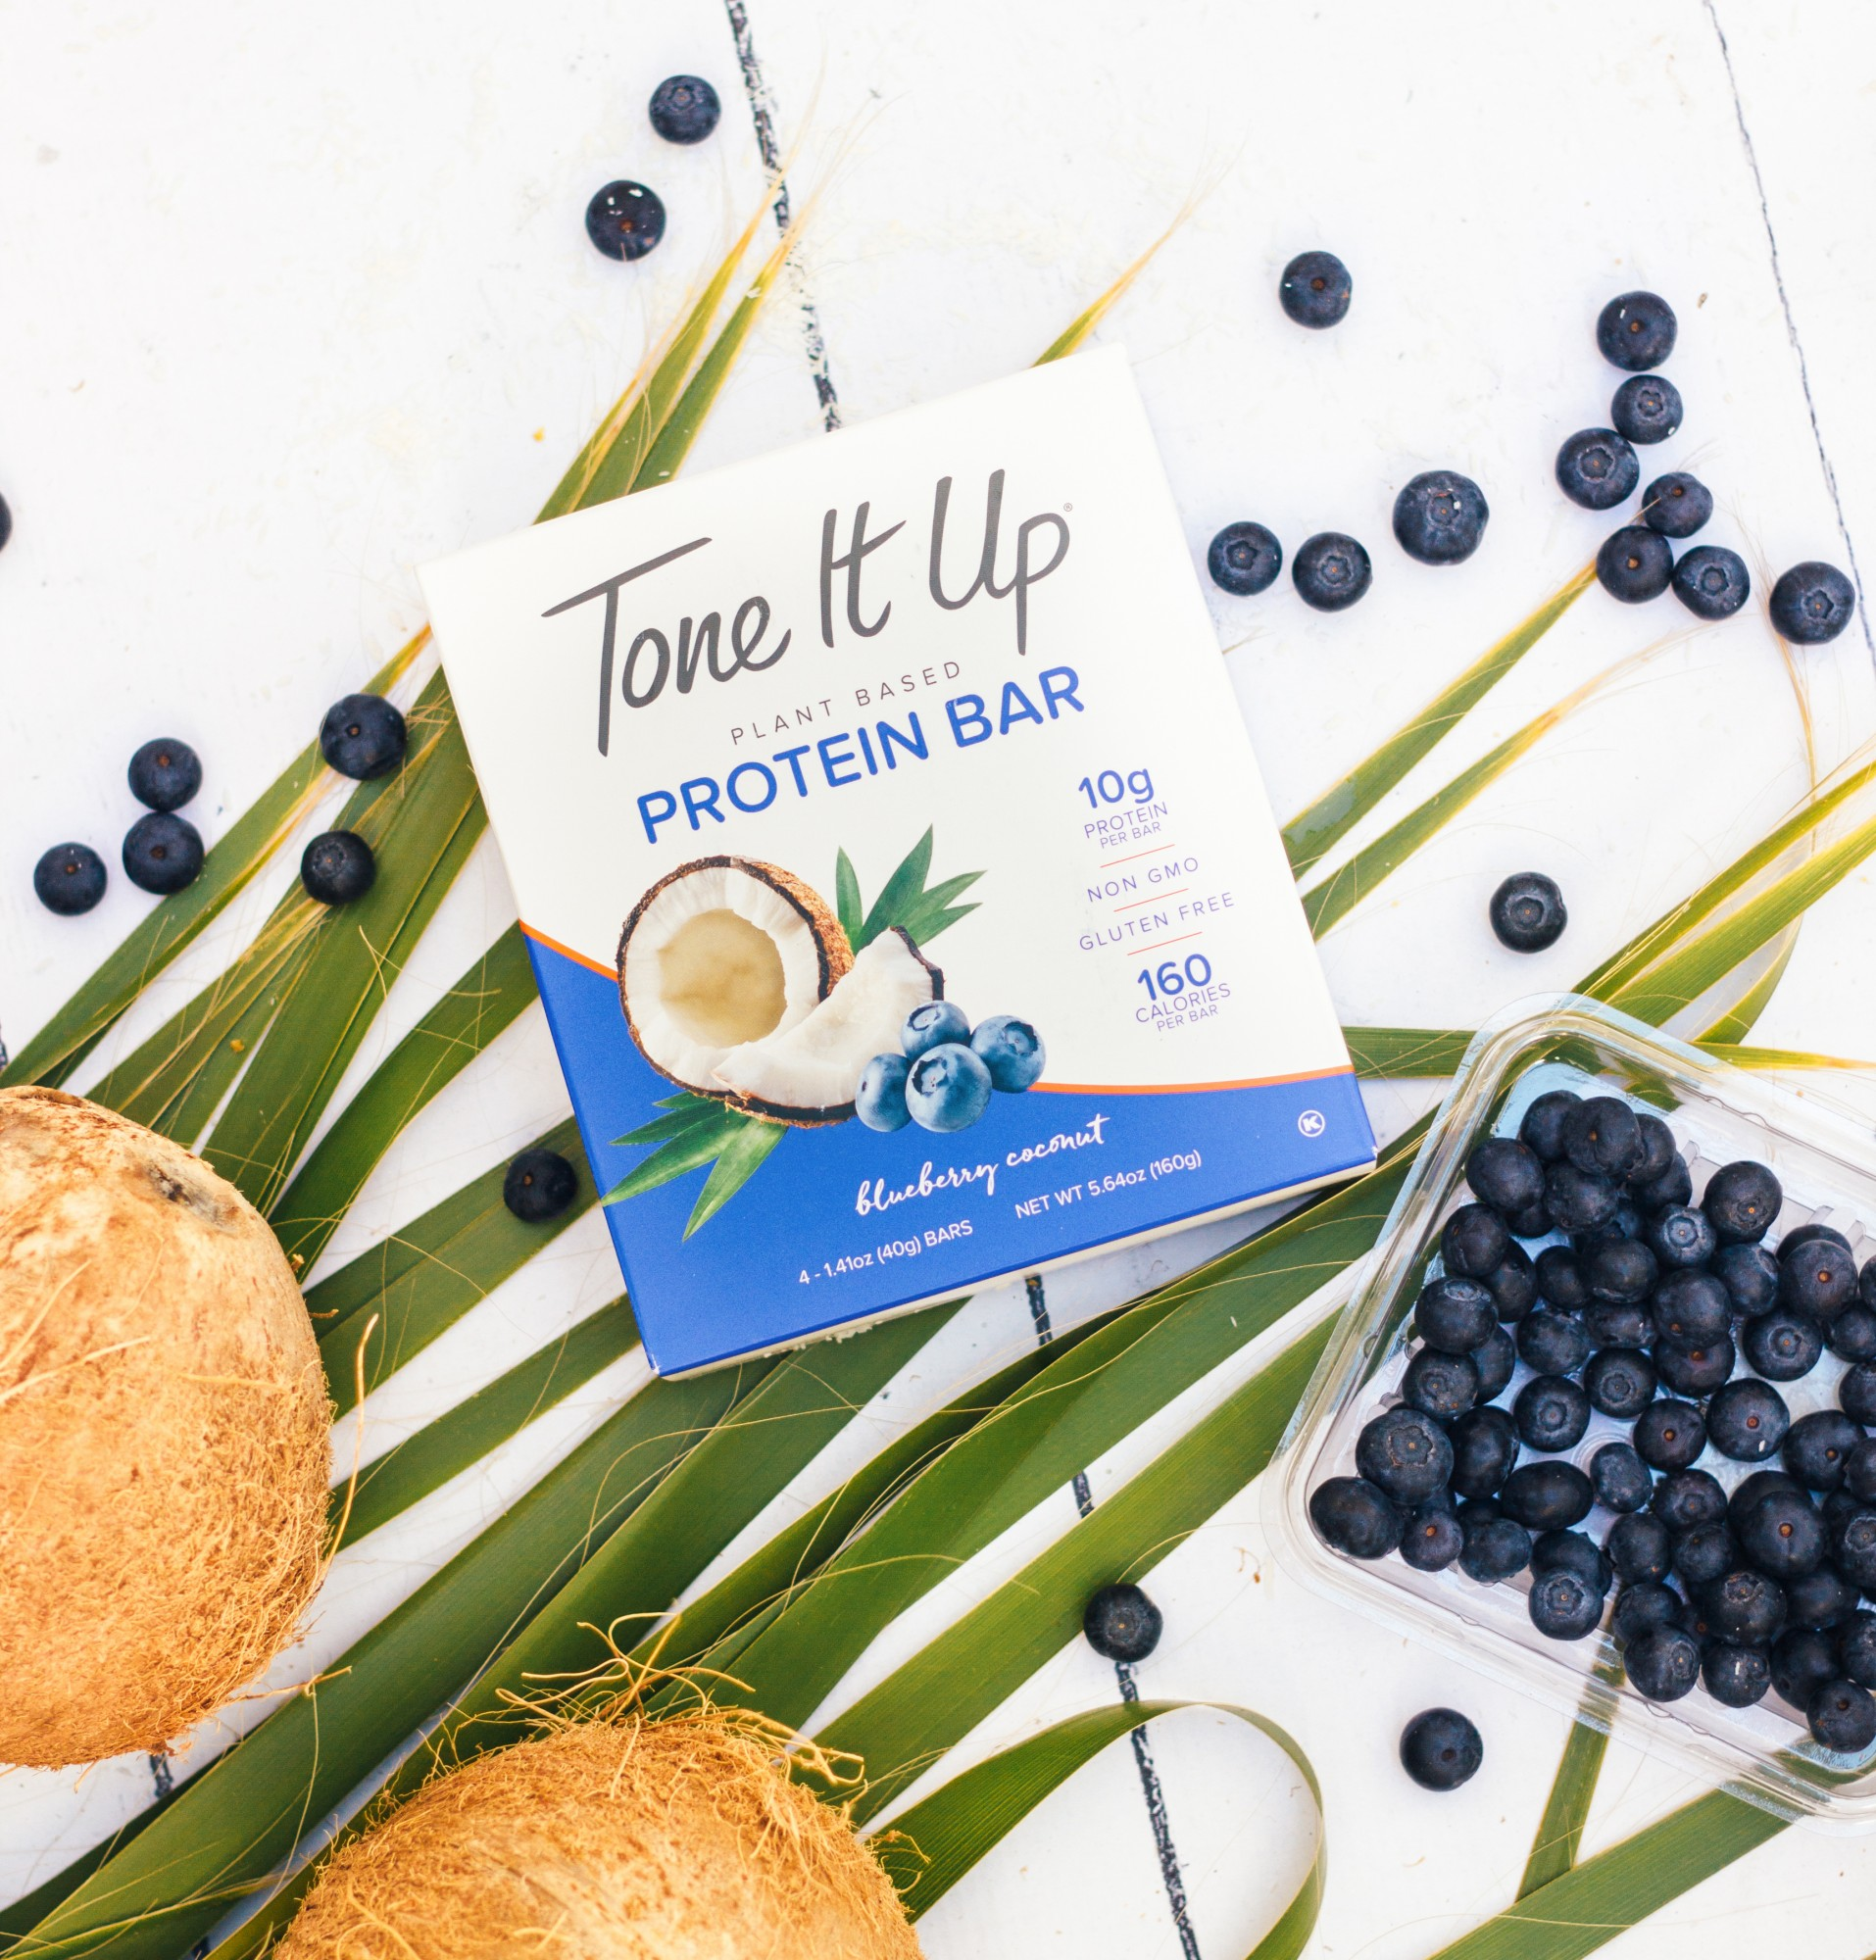 Tone It Up Protein Bar Target